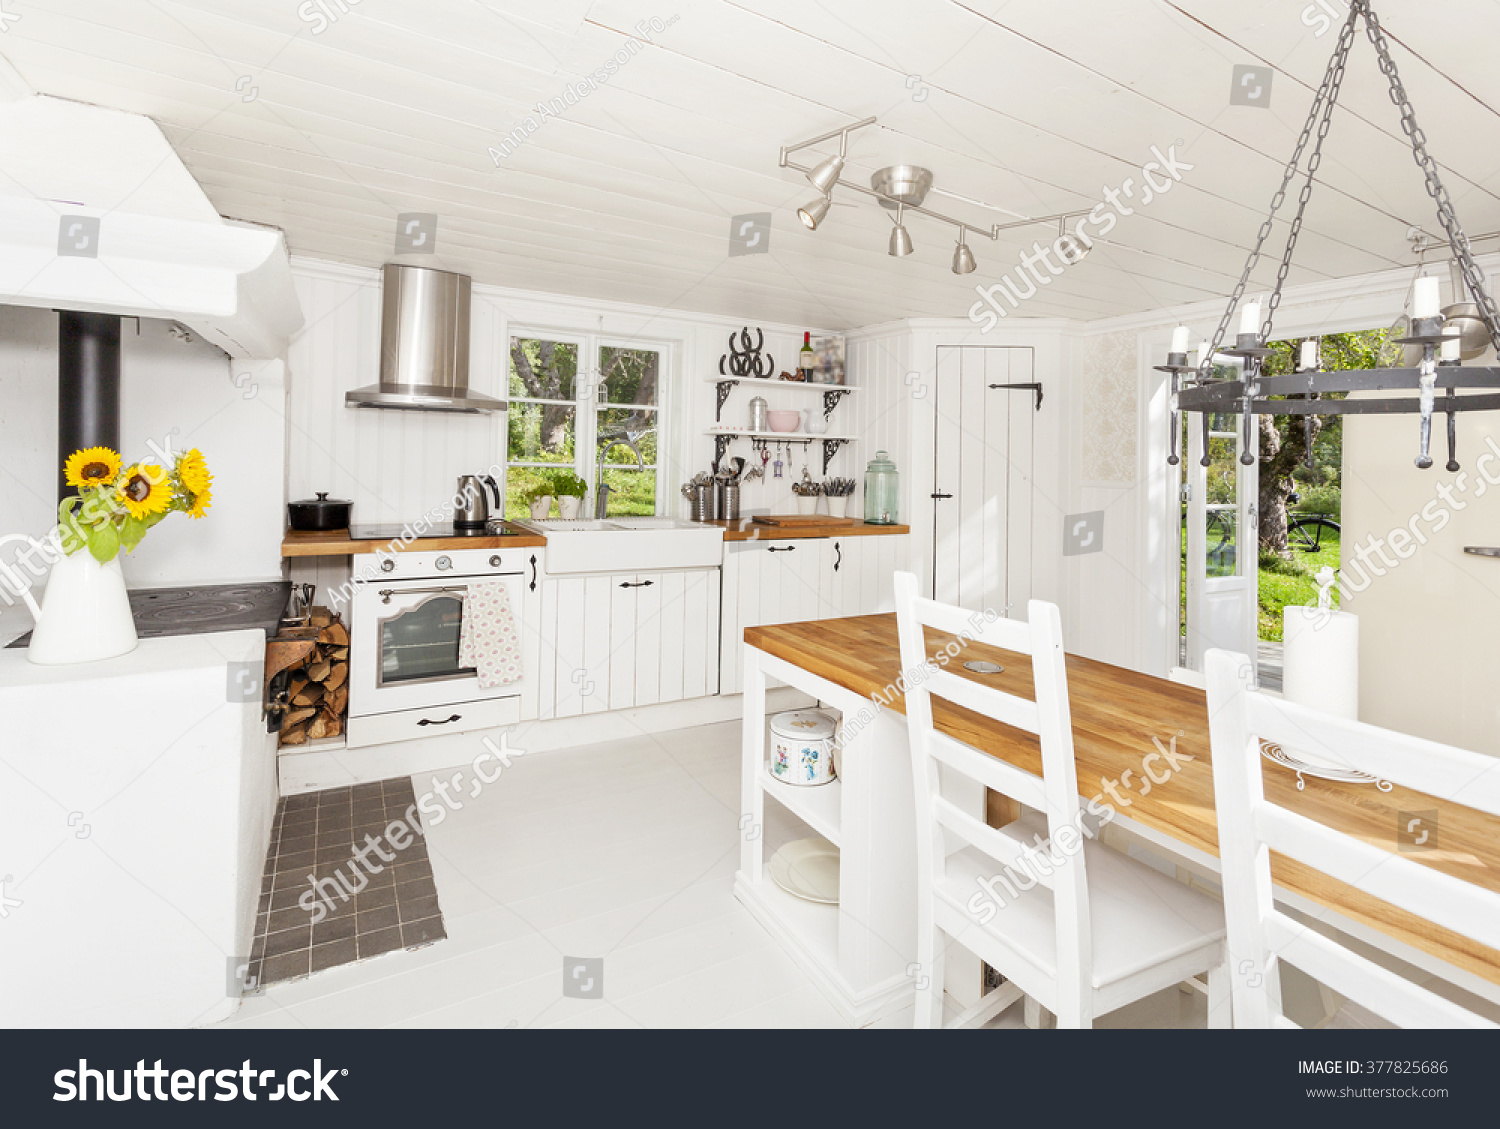 interior kitchen countryside white wooden floor stock photo 377825686 shutterstock. Black Bedroom Furniture Sets. Home Design Ideas